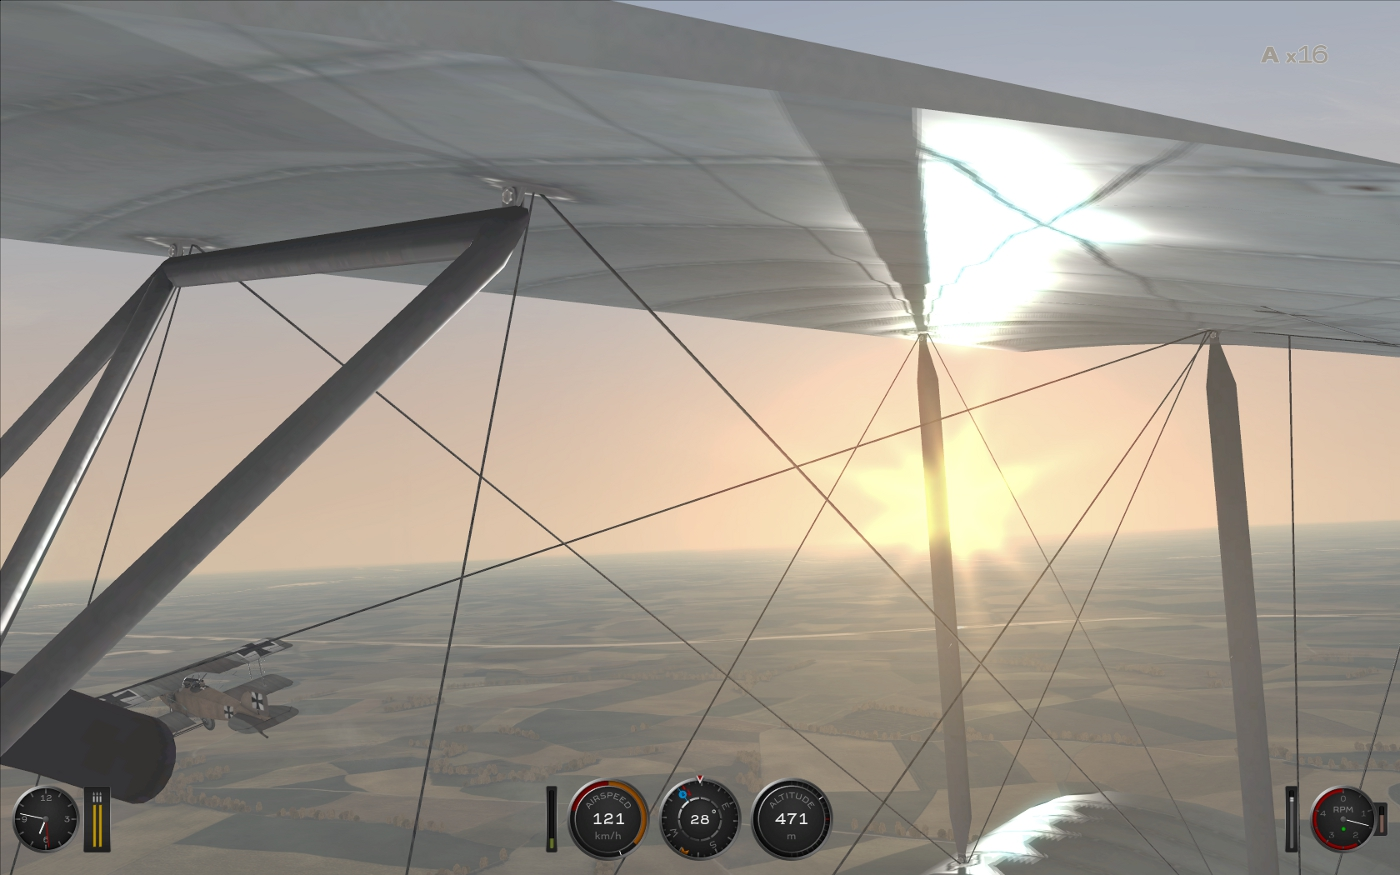 On fragile digital wings with beautiful planes